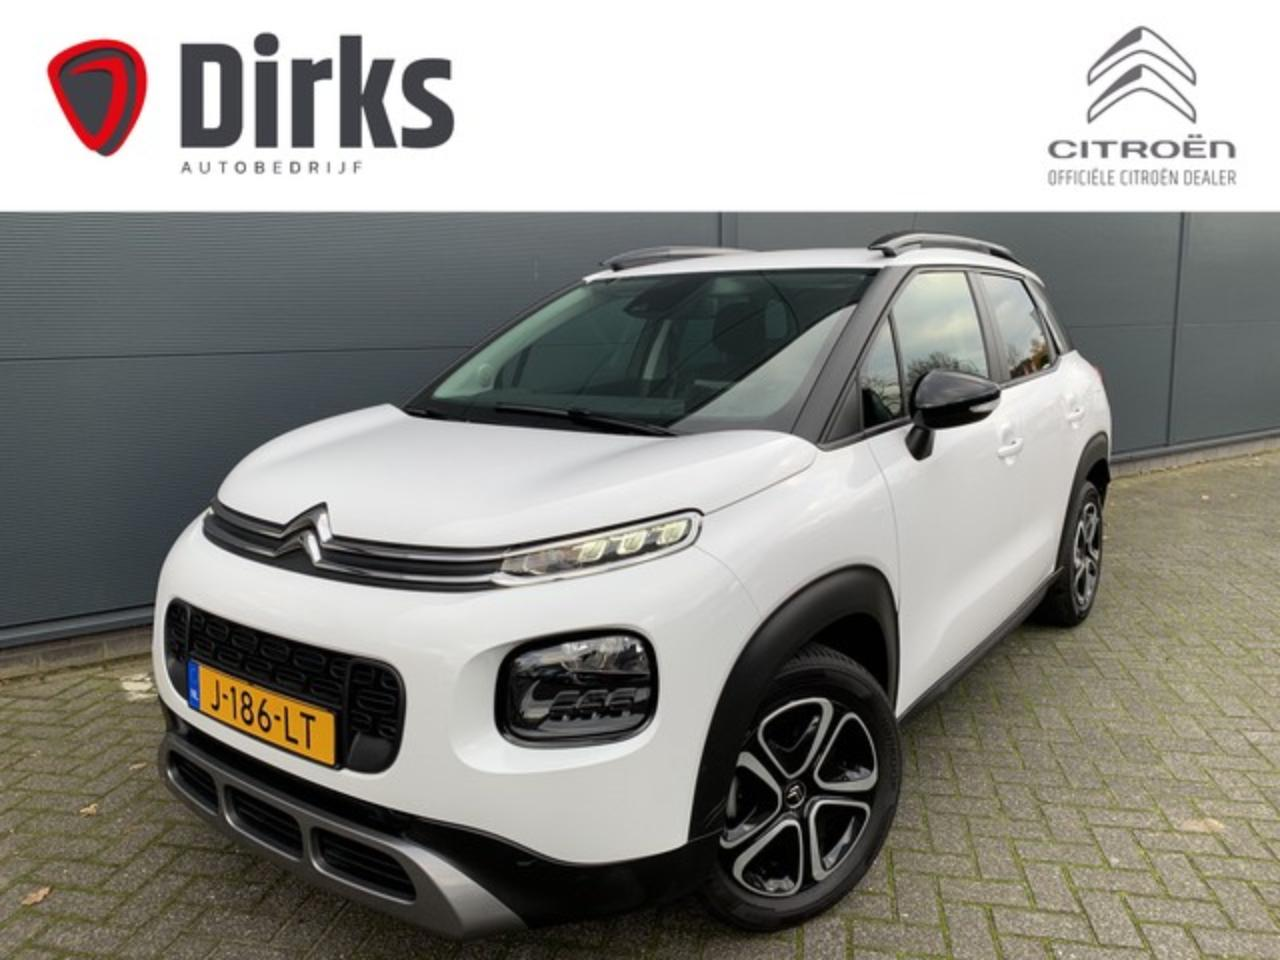 Citroën C3 AIRCROSS 110PK FEEL NAVI/CLIMA/HEAD-UP/KEYLESS-ENTRY